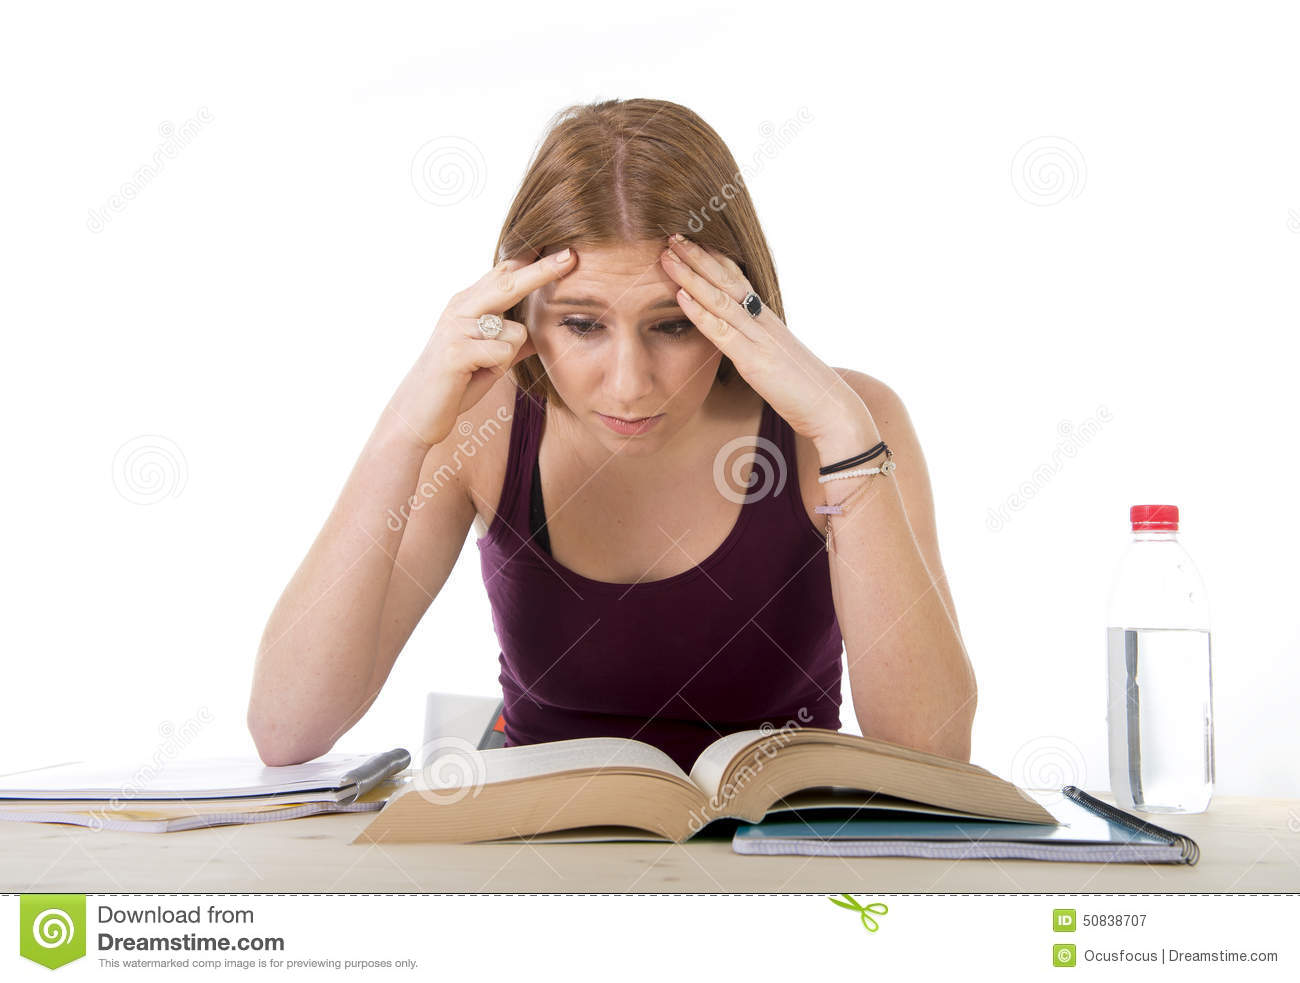 college student girl studying for university exam worried Student Sitting at Desk Clip Art Black and White Student Sitting at Desk Clip Art Black and White